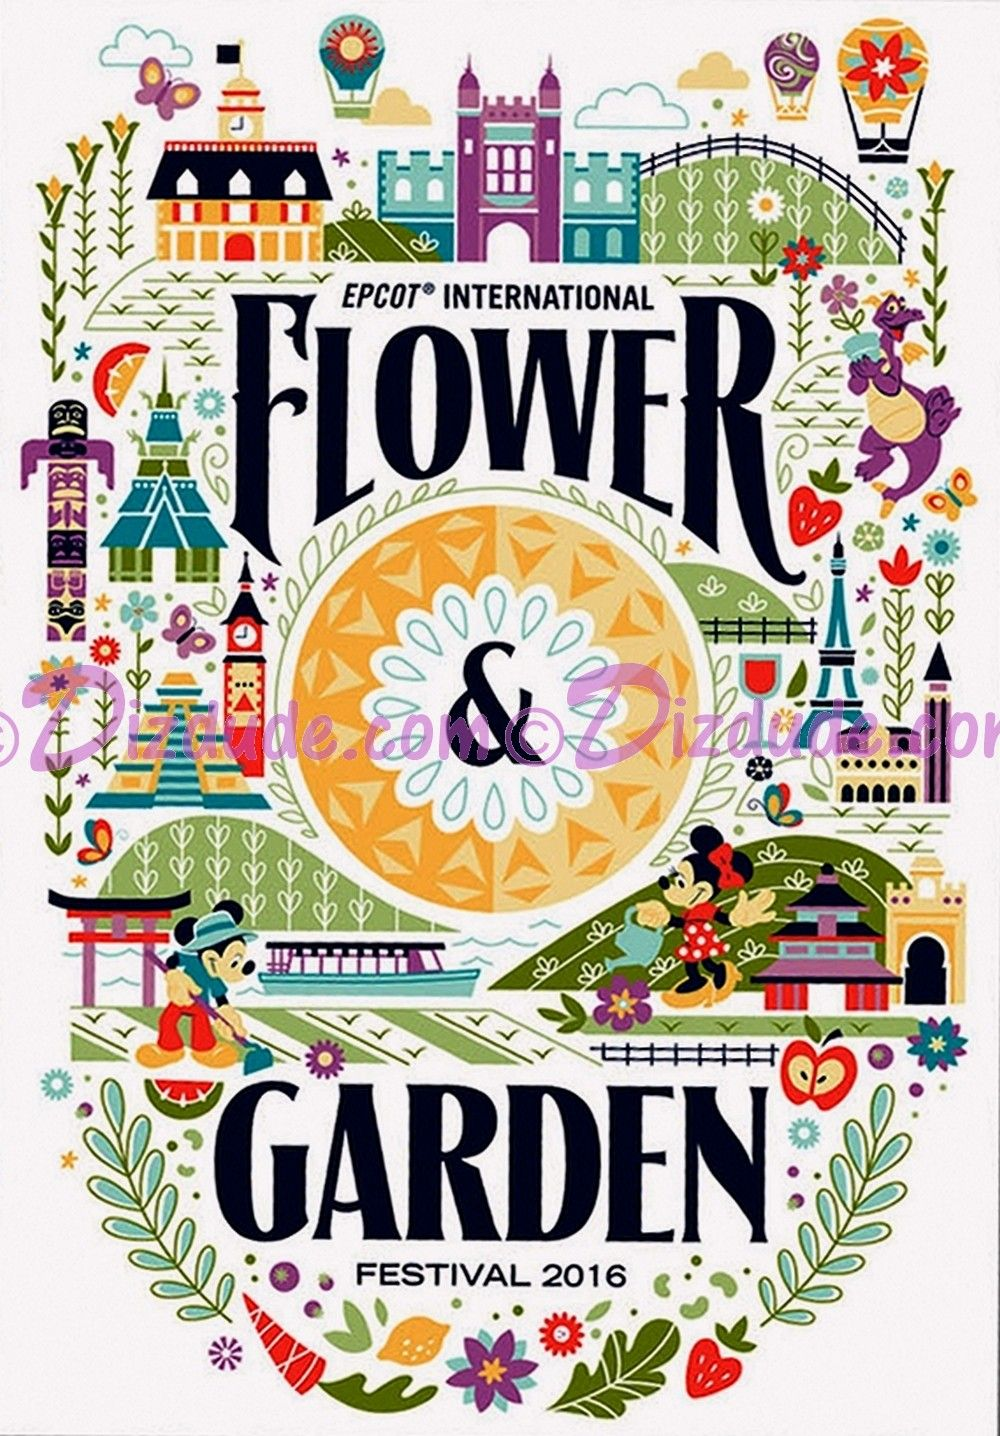 Disney Epcot International Flower Garden Festival 2016 Poster